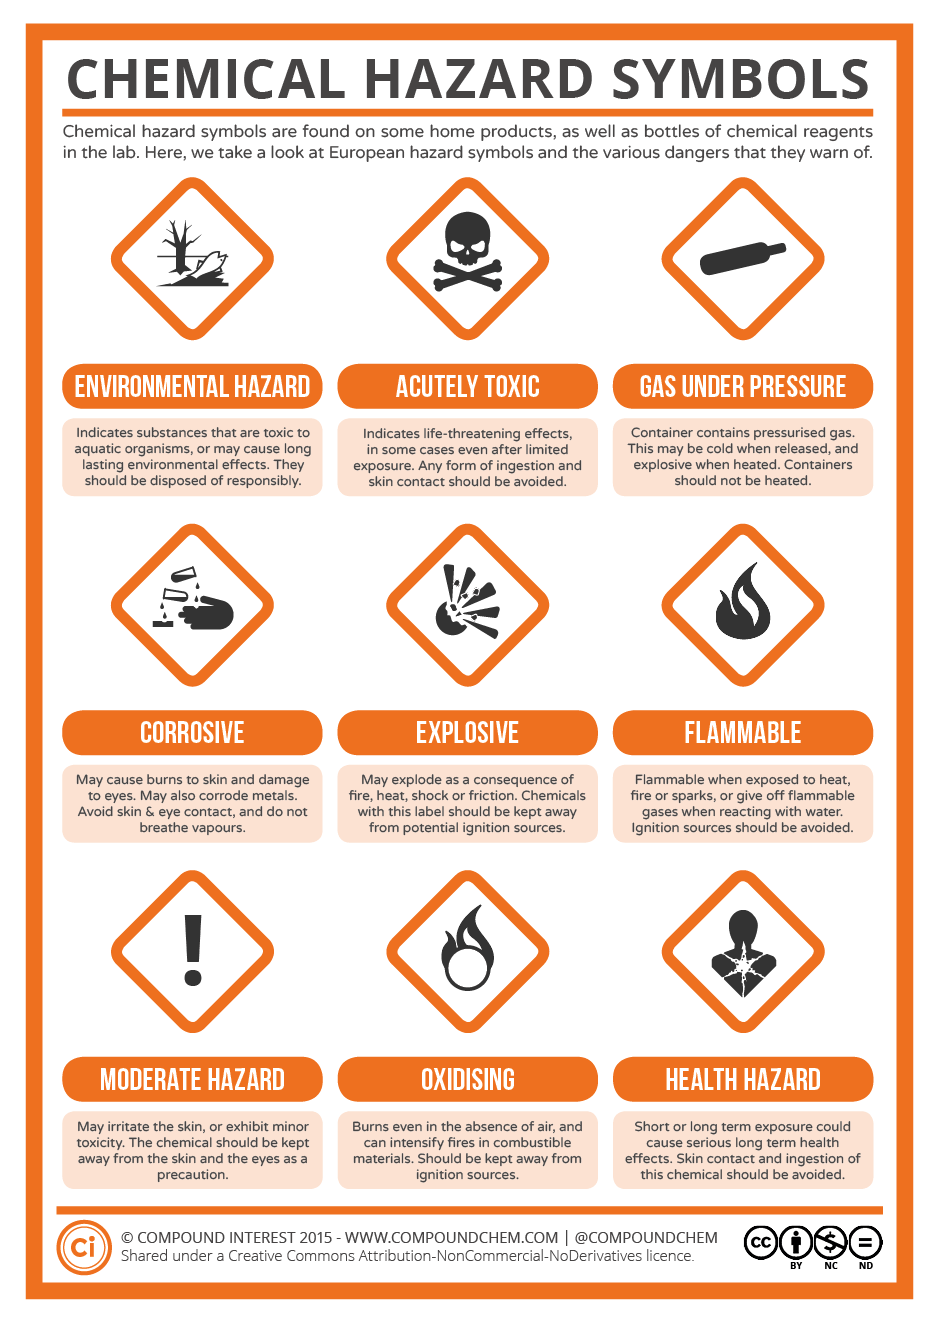 Compound interest a guide to chemical hazard symbols a guide to chemical hazard symbols biocorpaavc Images